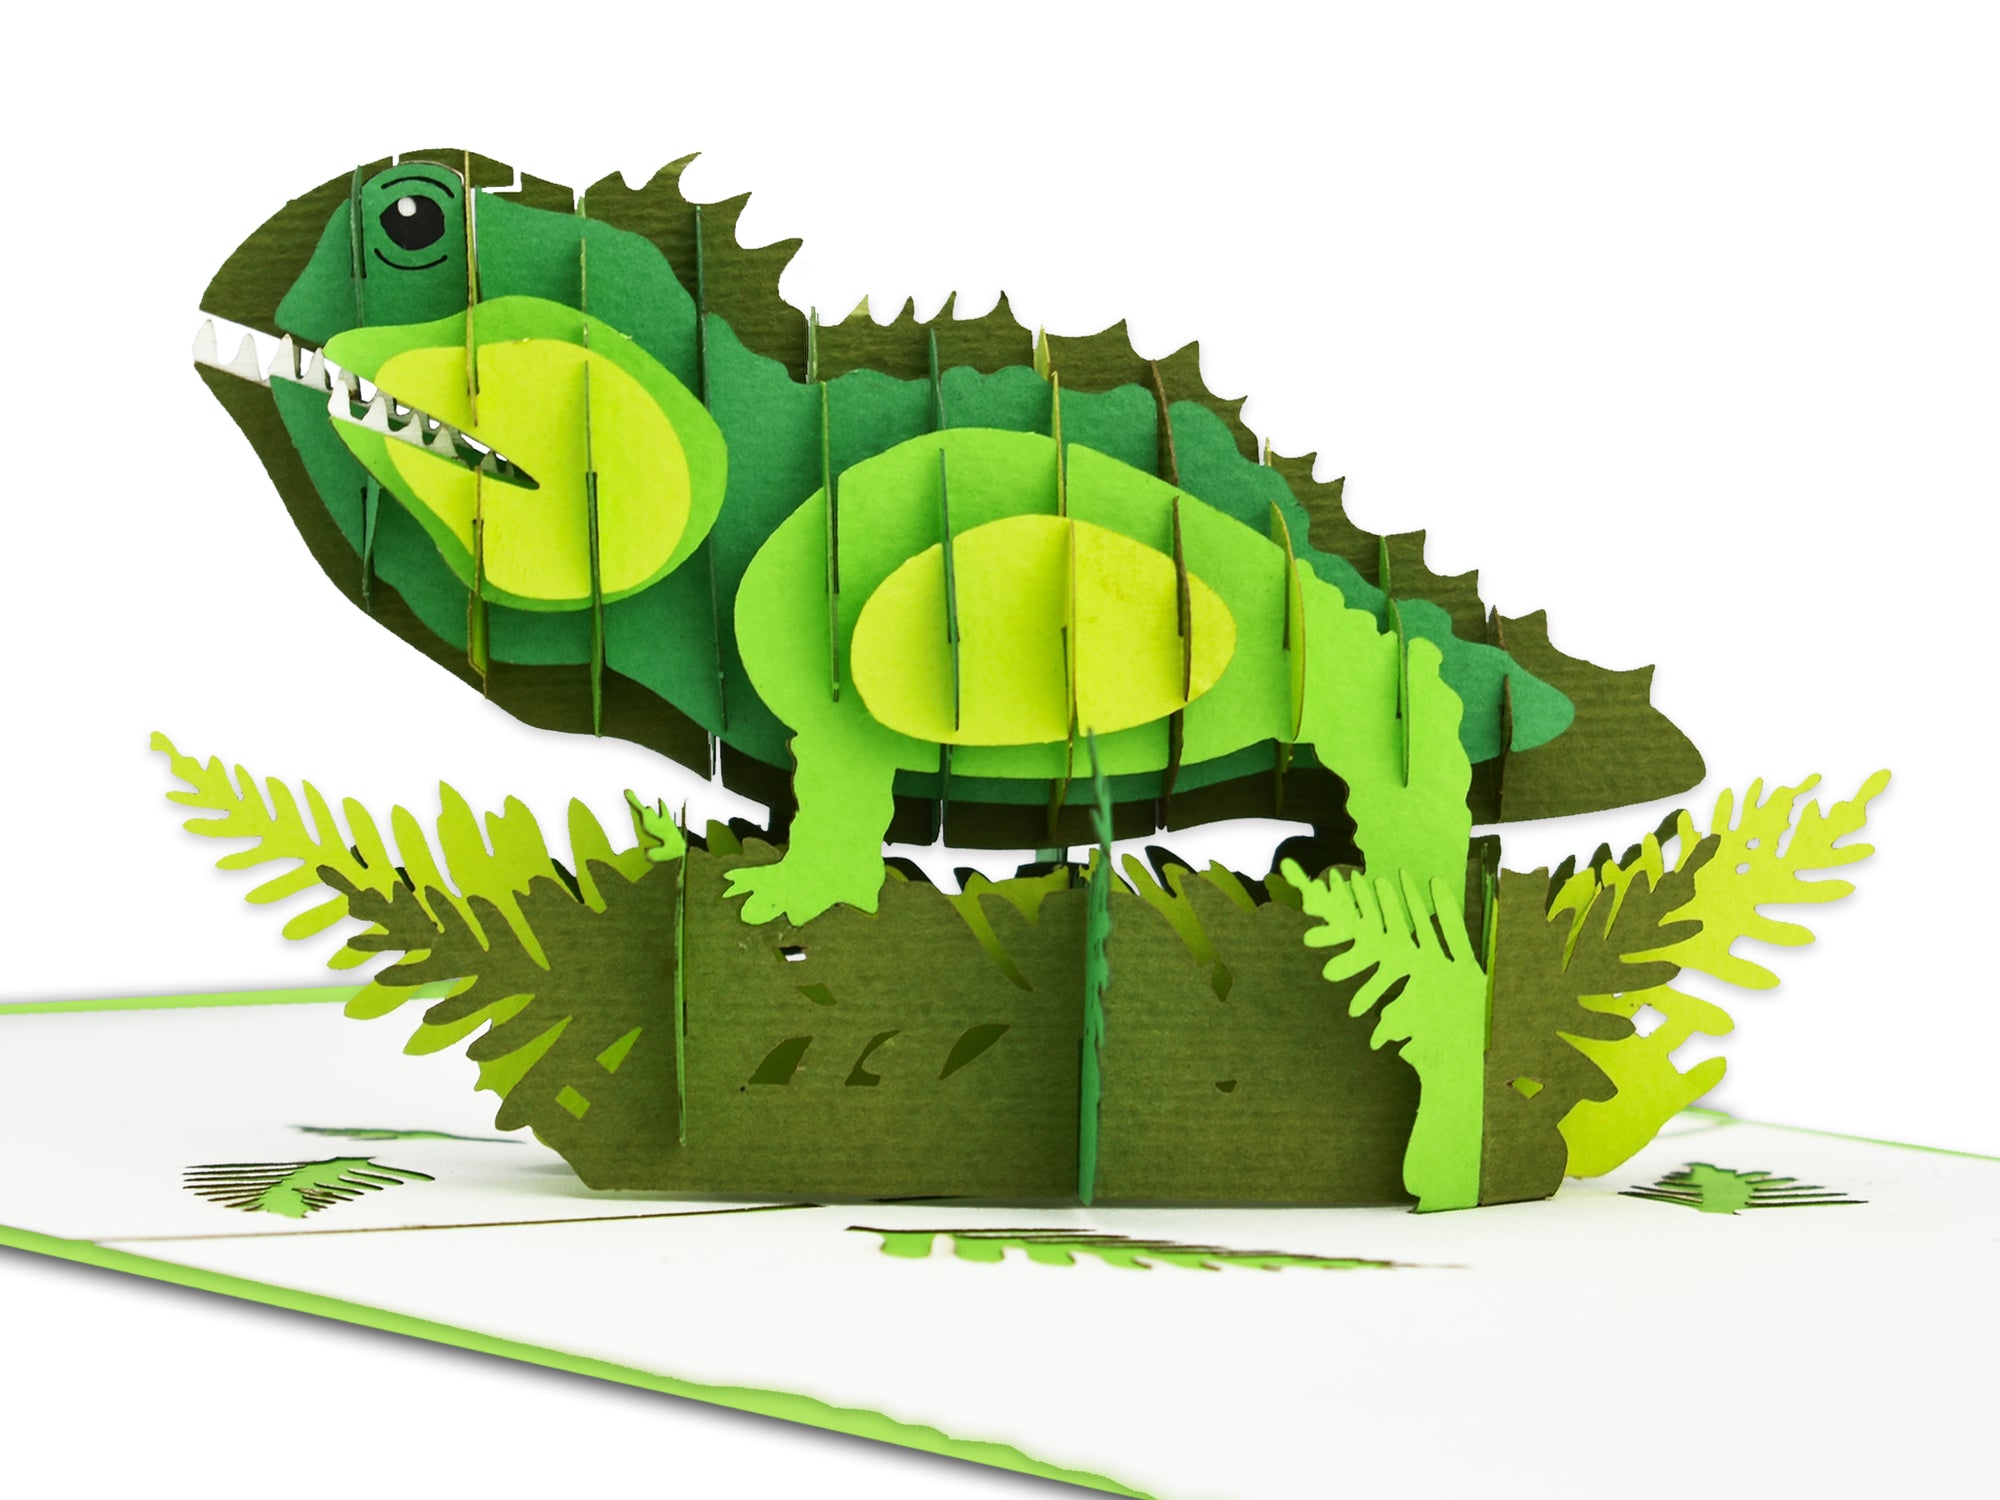 New Zealand Tuatara 3D Creative Pop Up Card - close up